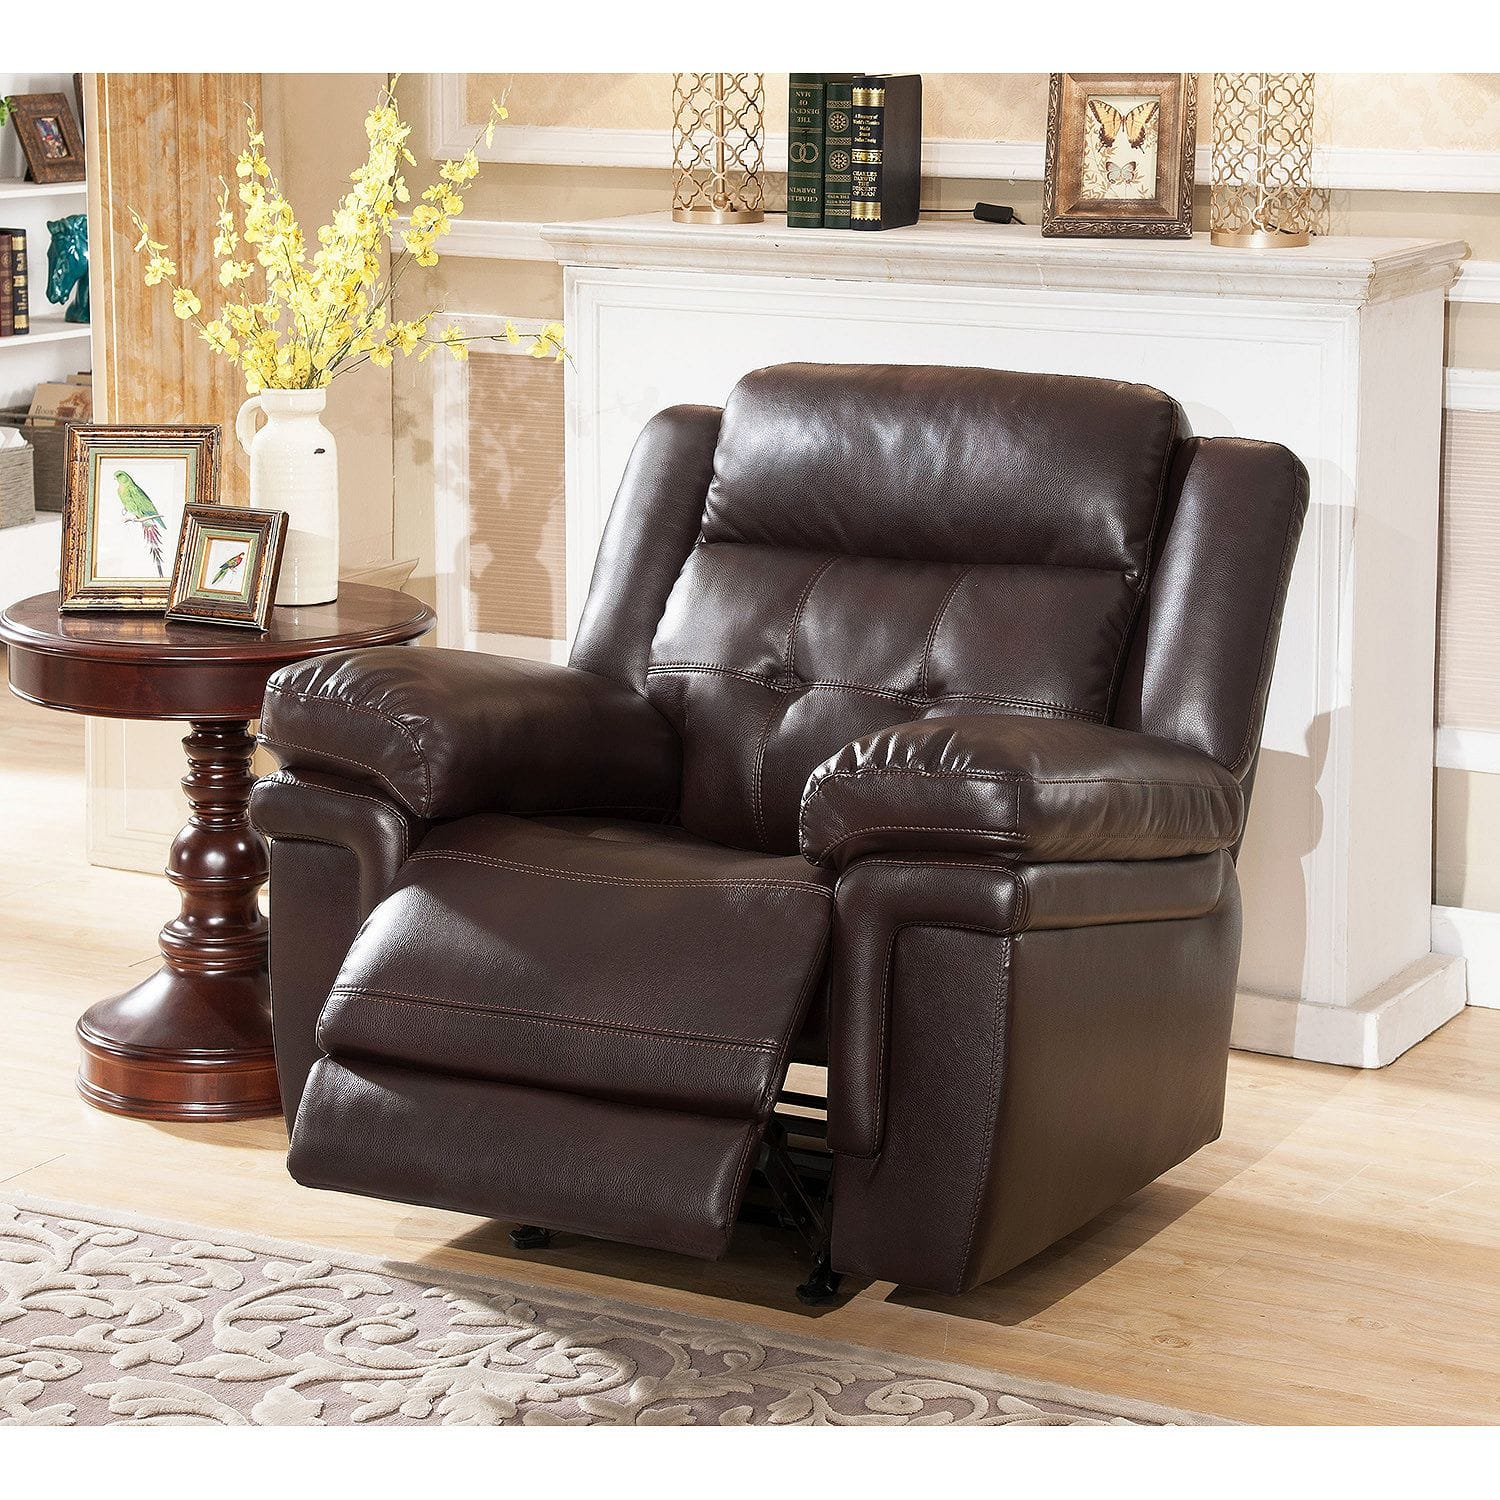 Abbyson Living Clarence Rocker Recliner in Brown - $299.00 Shipped Free